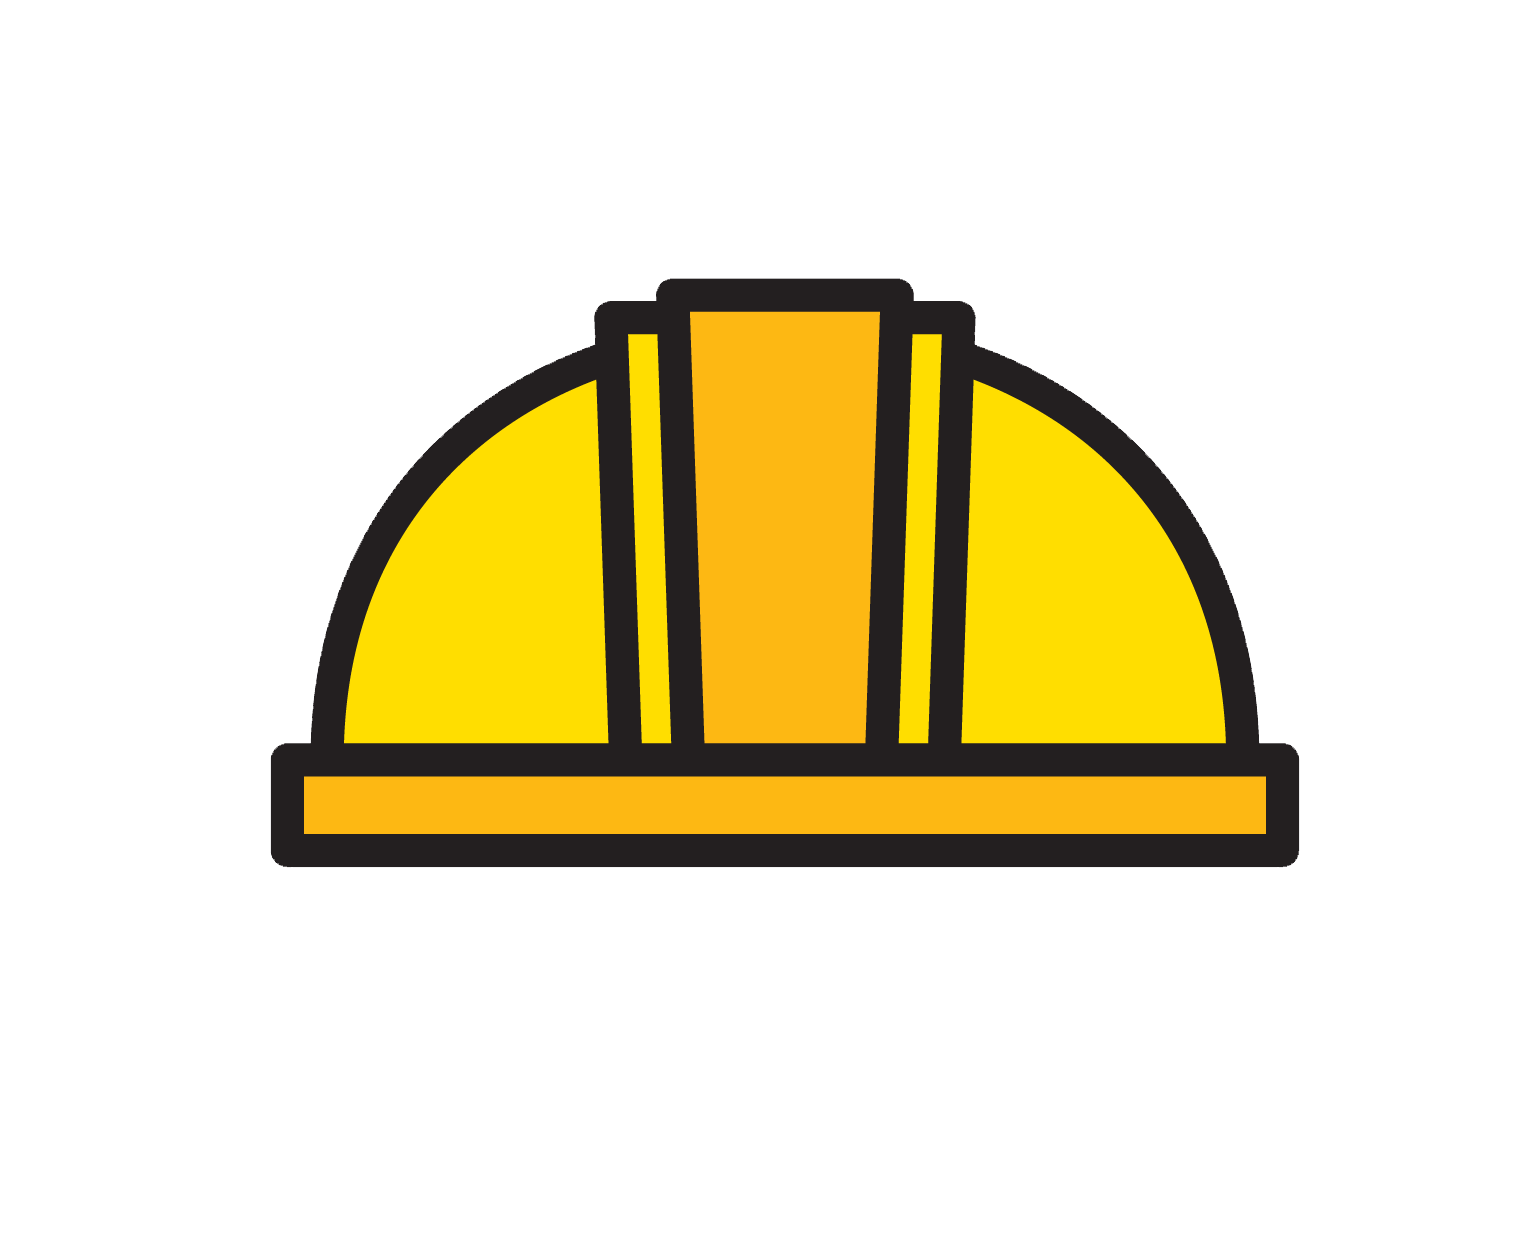 Hard hat Yellow Architectural engineering Icon.